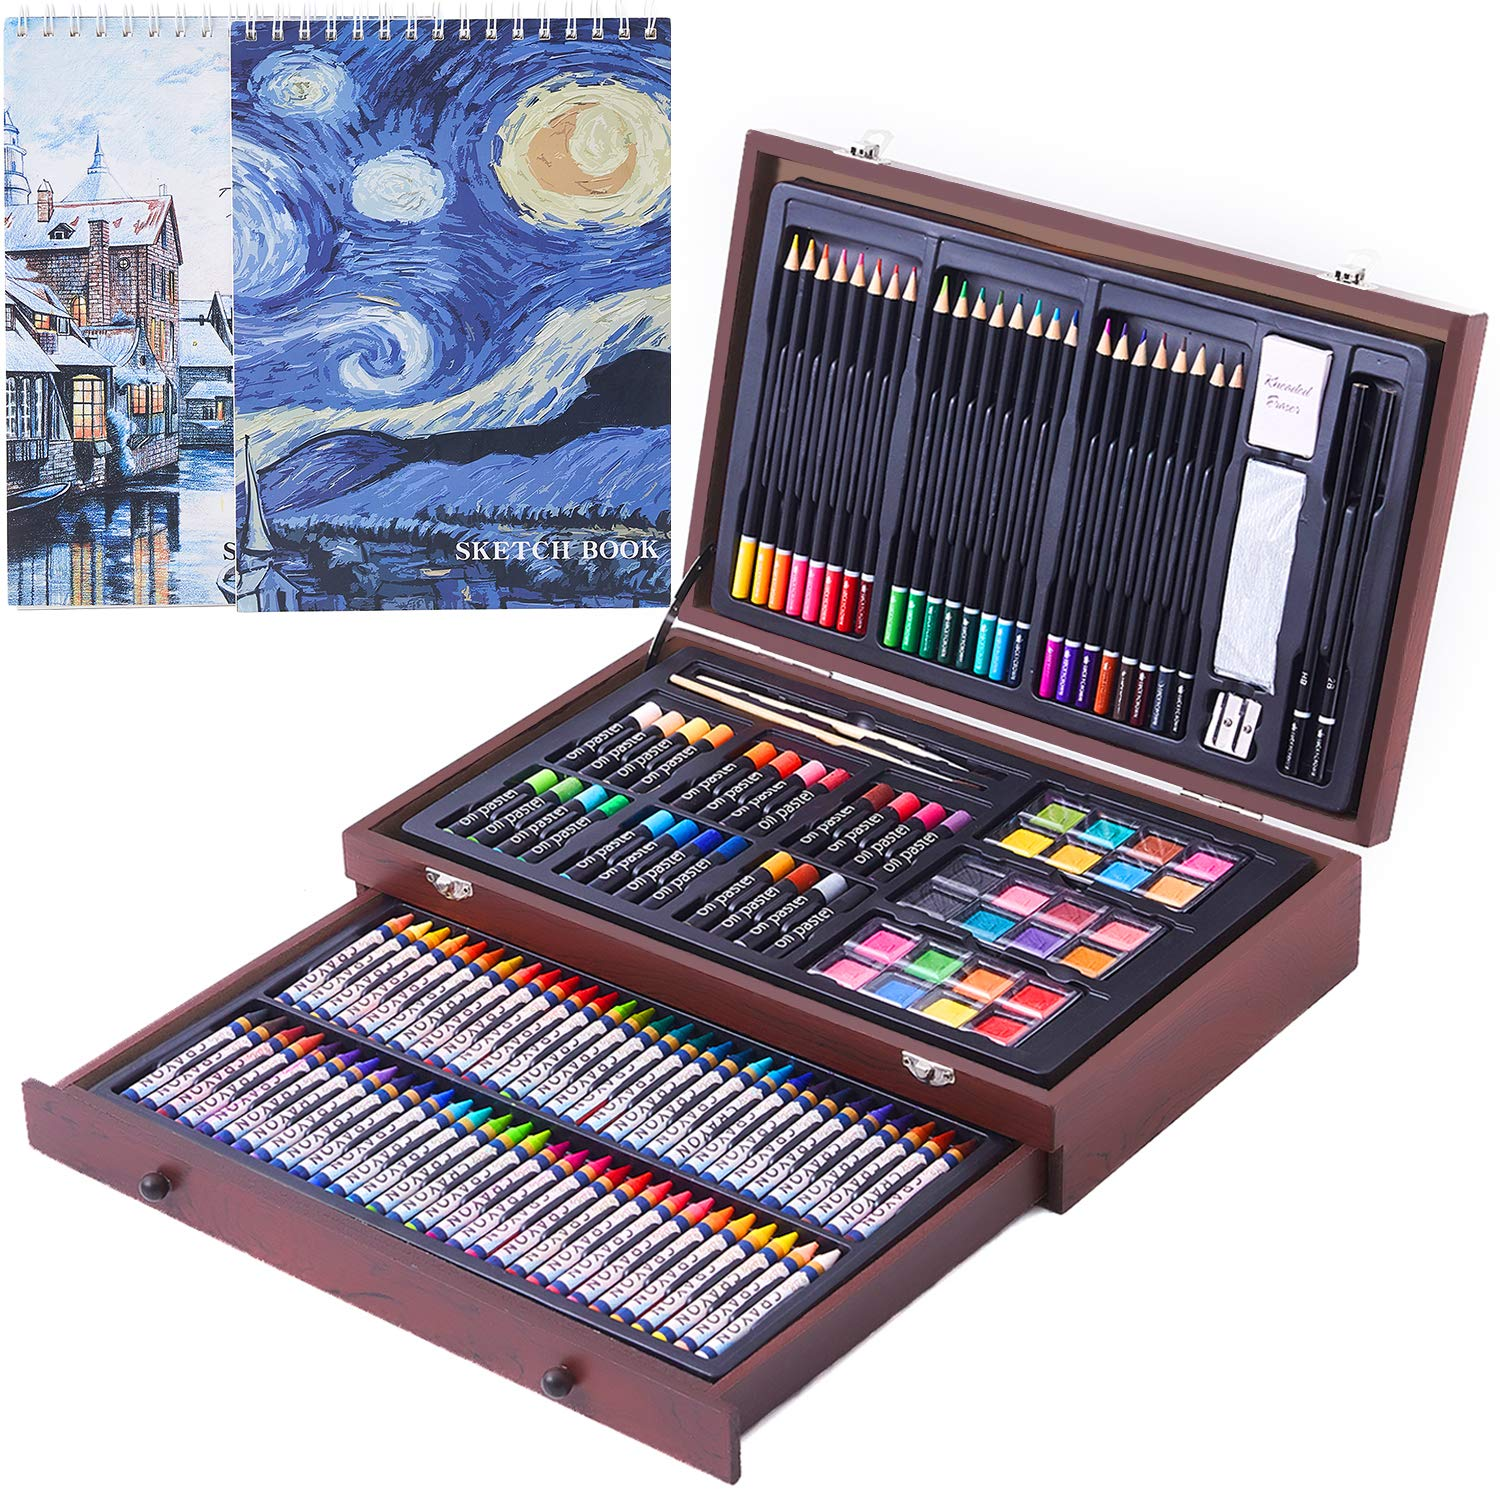 145 Piece Deluxe Art Creativity Set, Art Supplies in Portable Wooden Case- Crayons, Oil Pastels, Colored Pencils, Watercolor Cakes, Sharpener, Sandpaper & 2 x 50 Page Drawing Pad! - Deluxe Art Set by COOL BANK